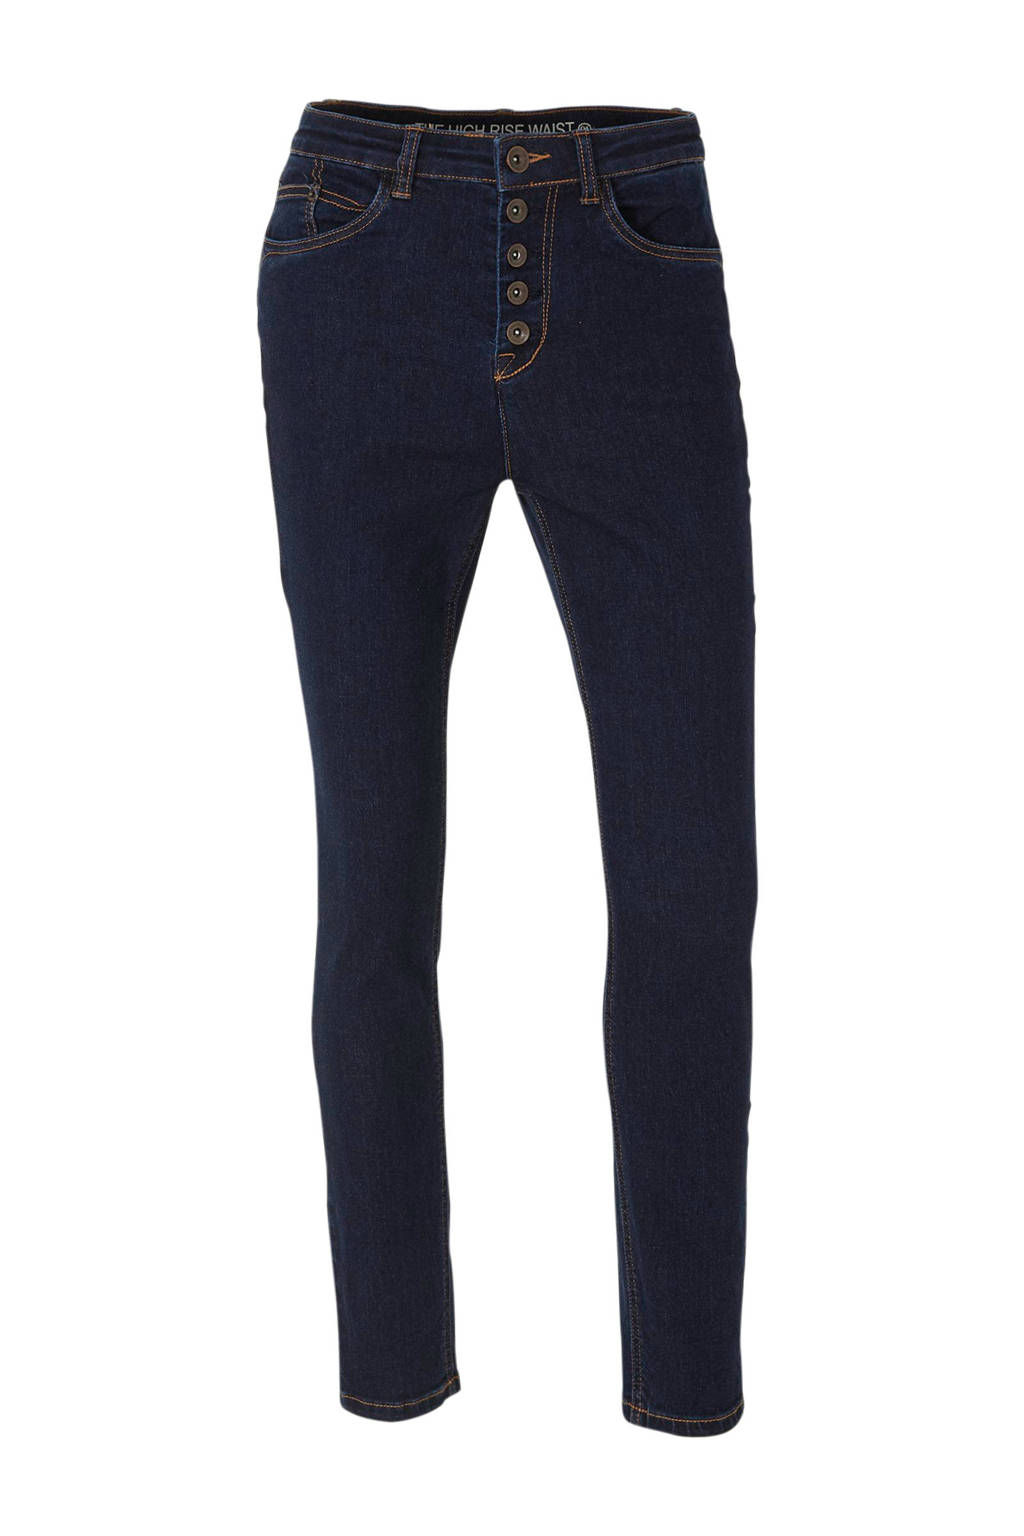 C&A Yessica high waist skinny jeans donkerblauw, Donkerblauw